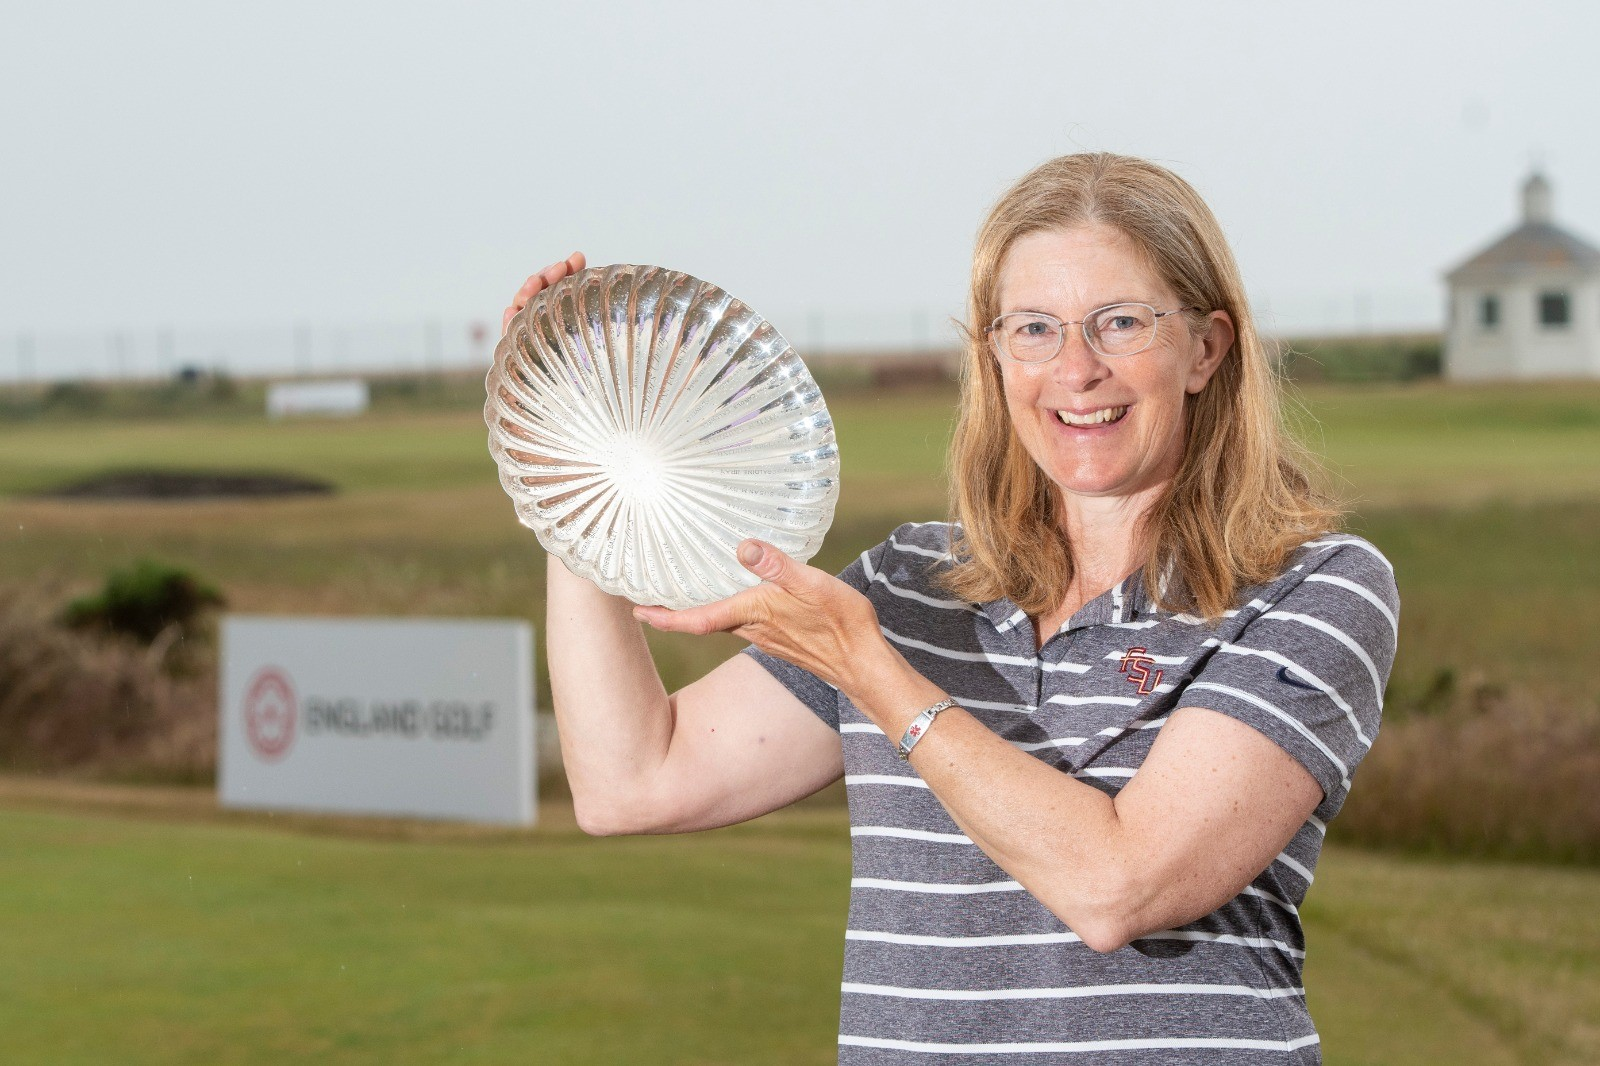 Senior Women's Stroke Play – Final Day: Wire-to-wire win for Williamson